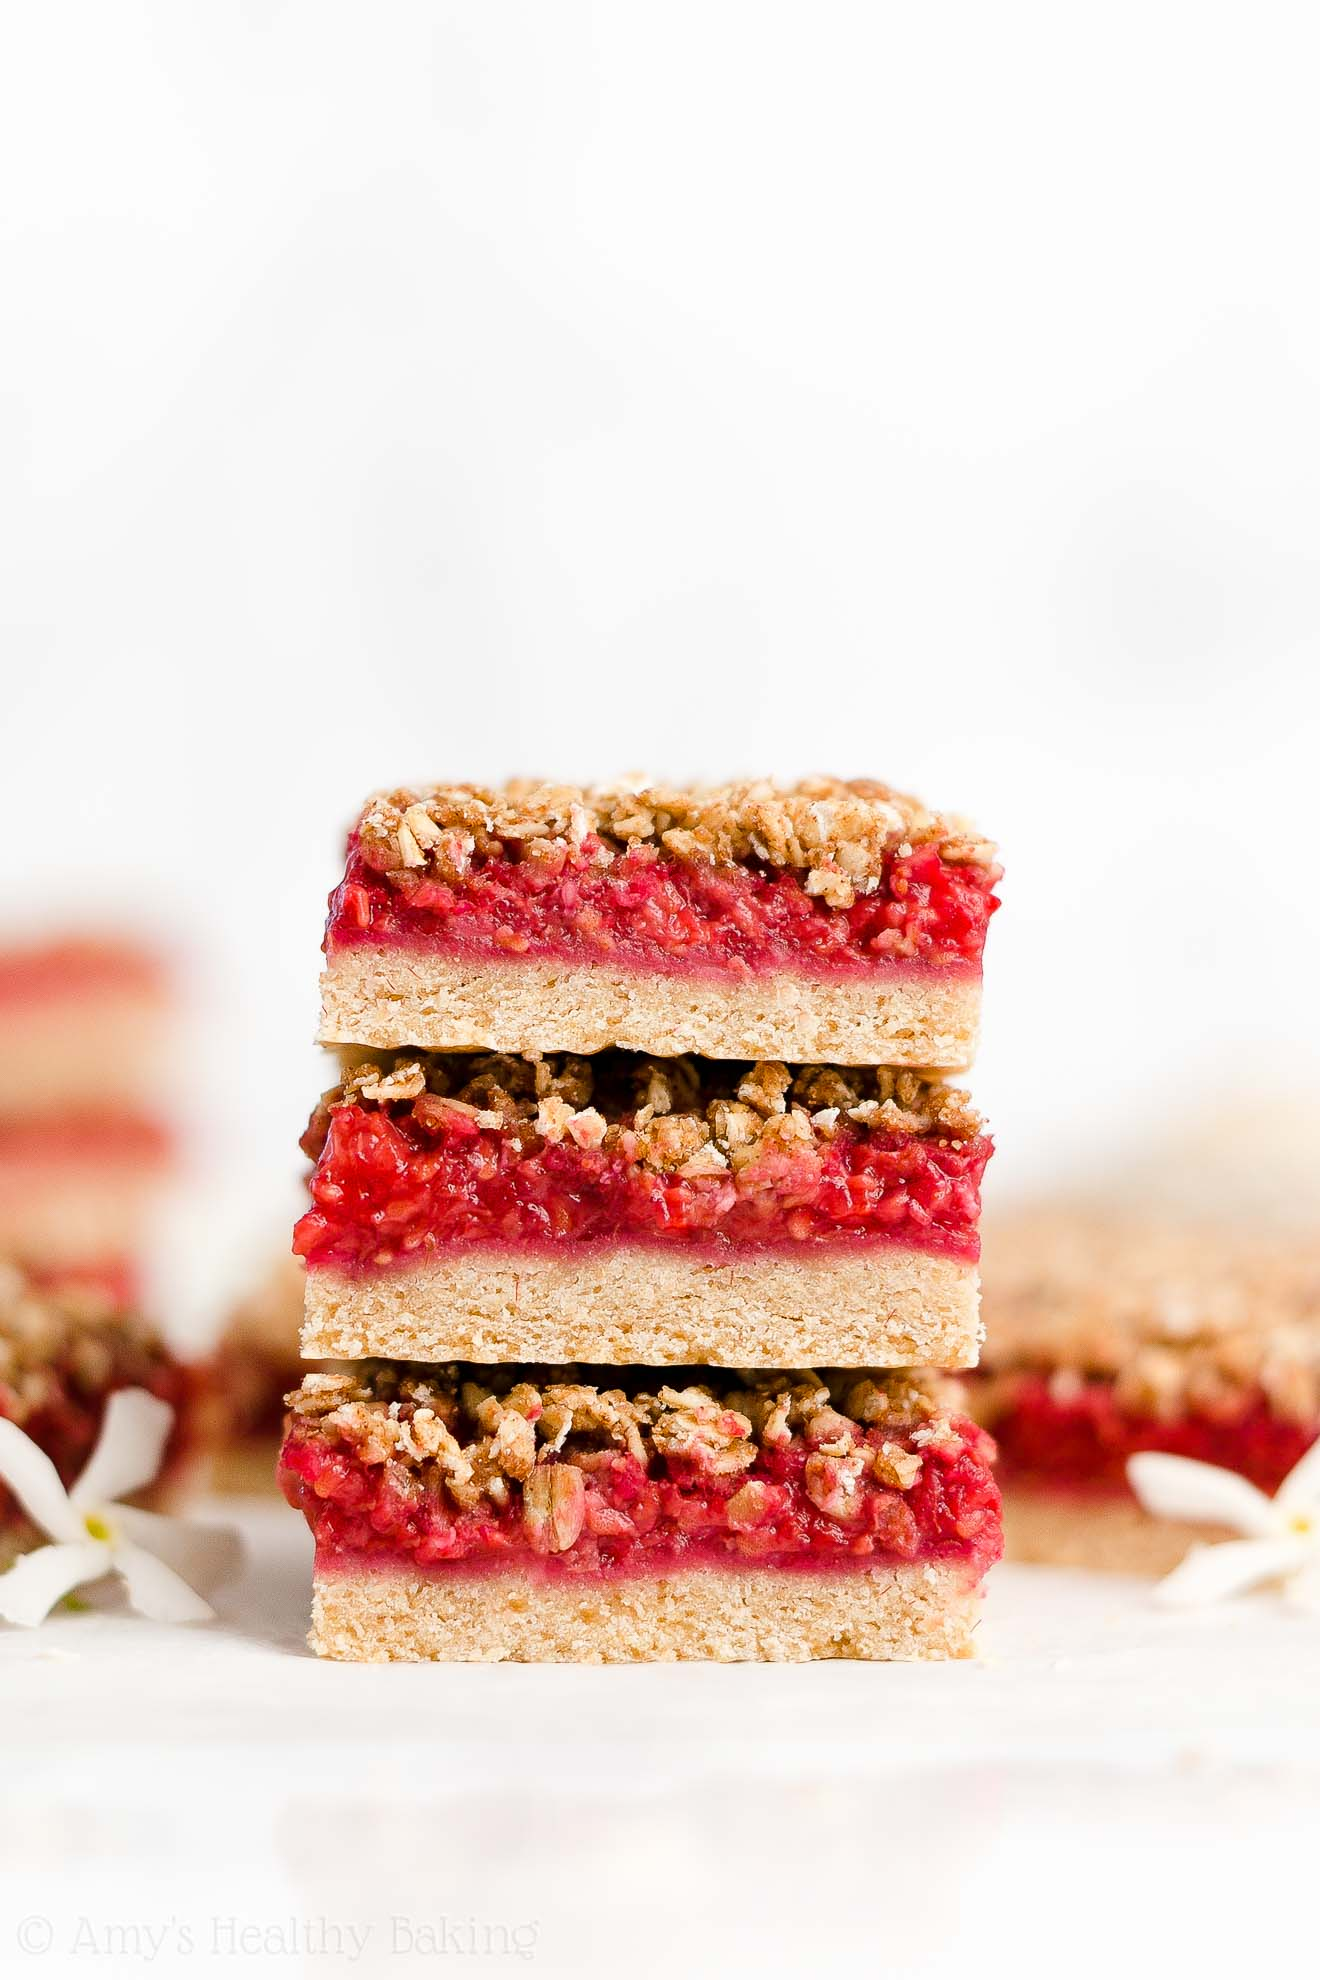 Best Easy Healthy Gluten Free Dairy Free Egg Free Fresh Raspberry Crumble Bars